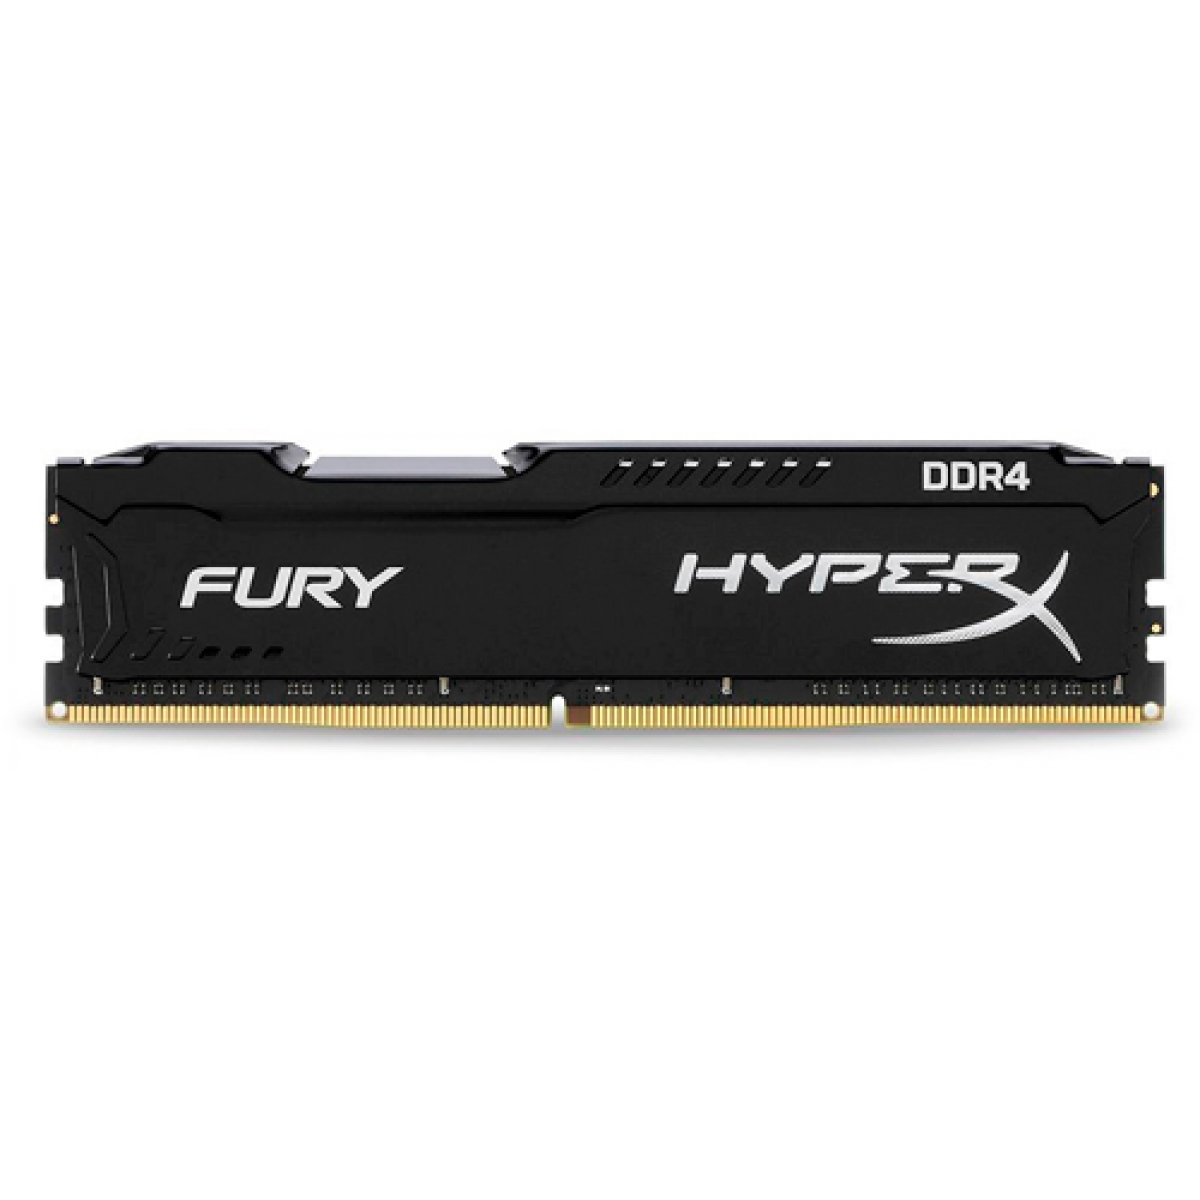 Memória DDR4 Kingston HyperX Fury, 8GB 2666MHz, HX426C16FB2/8